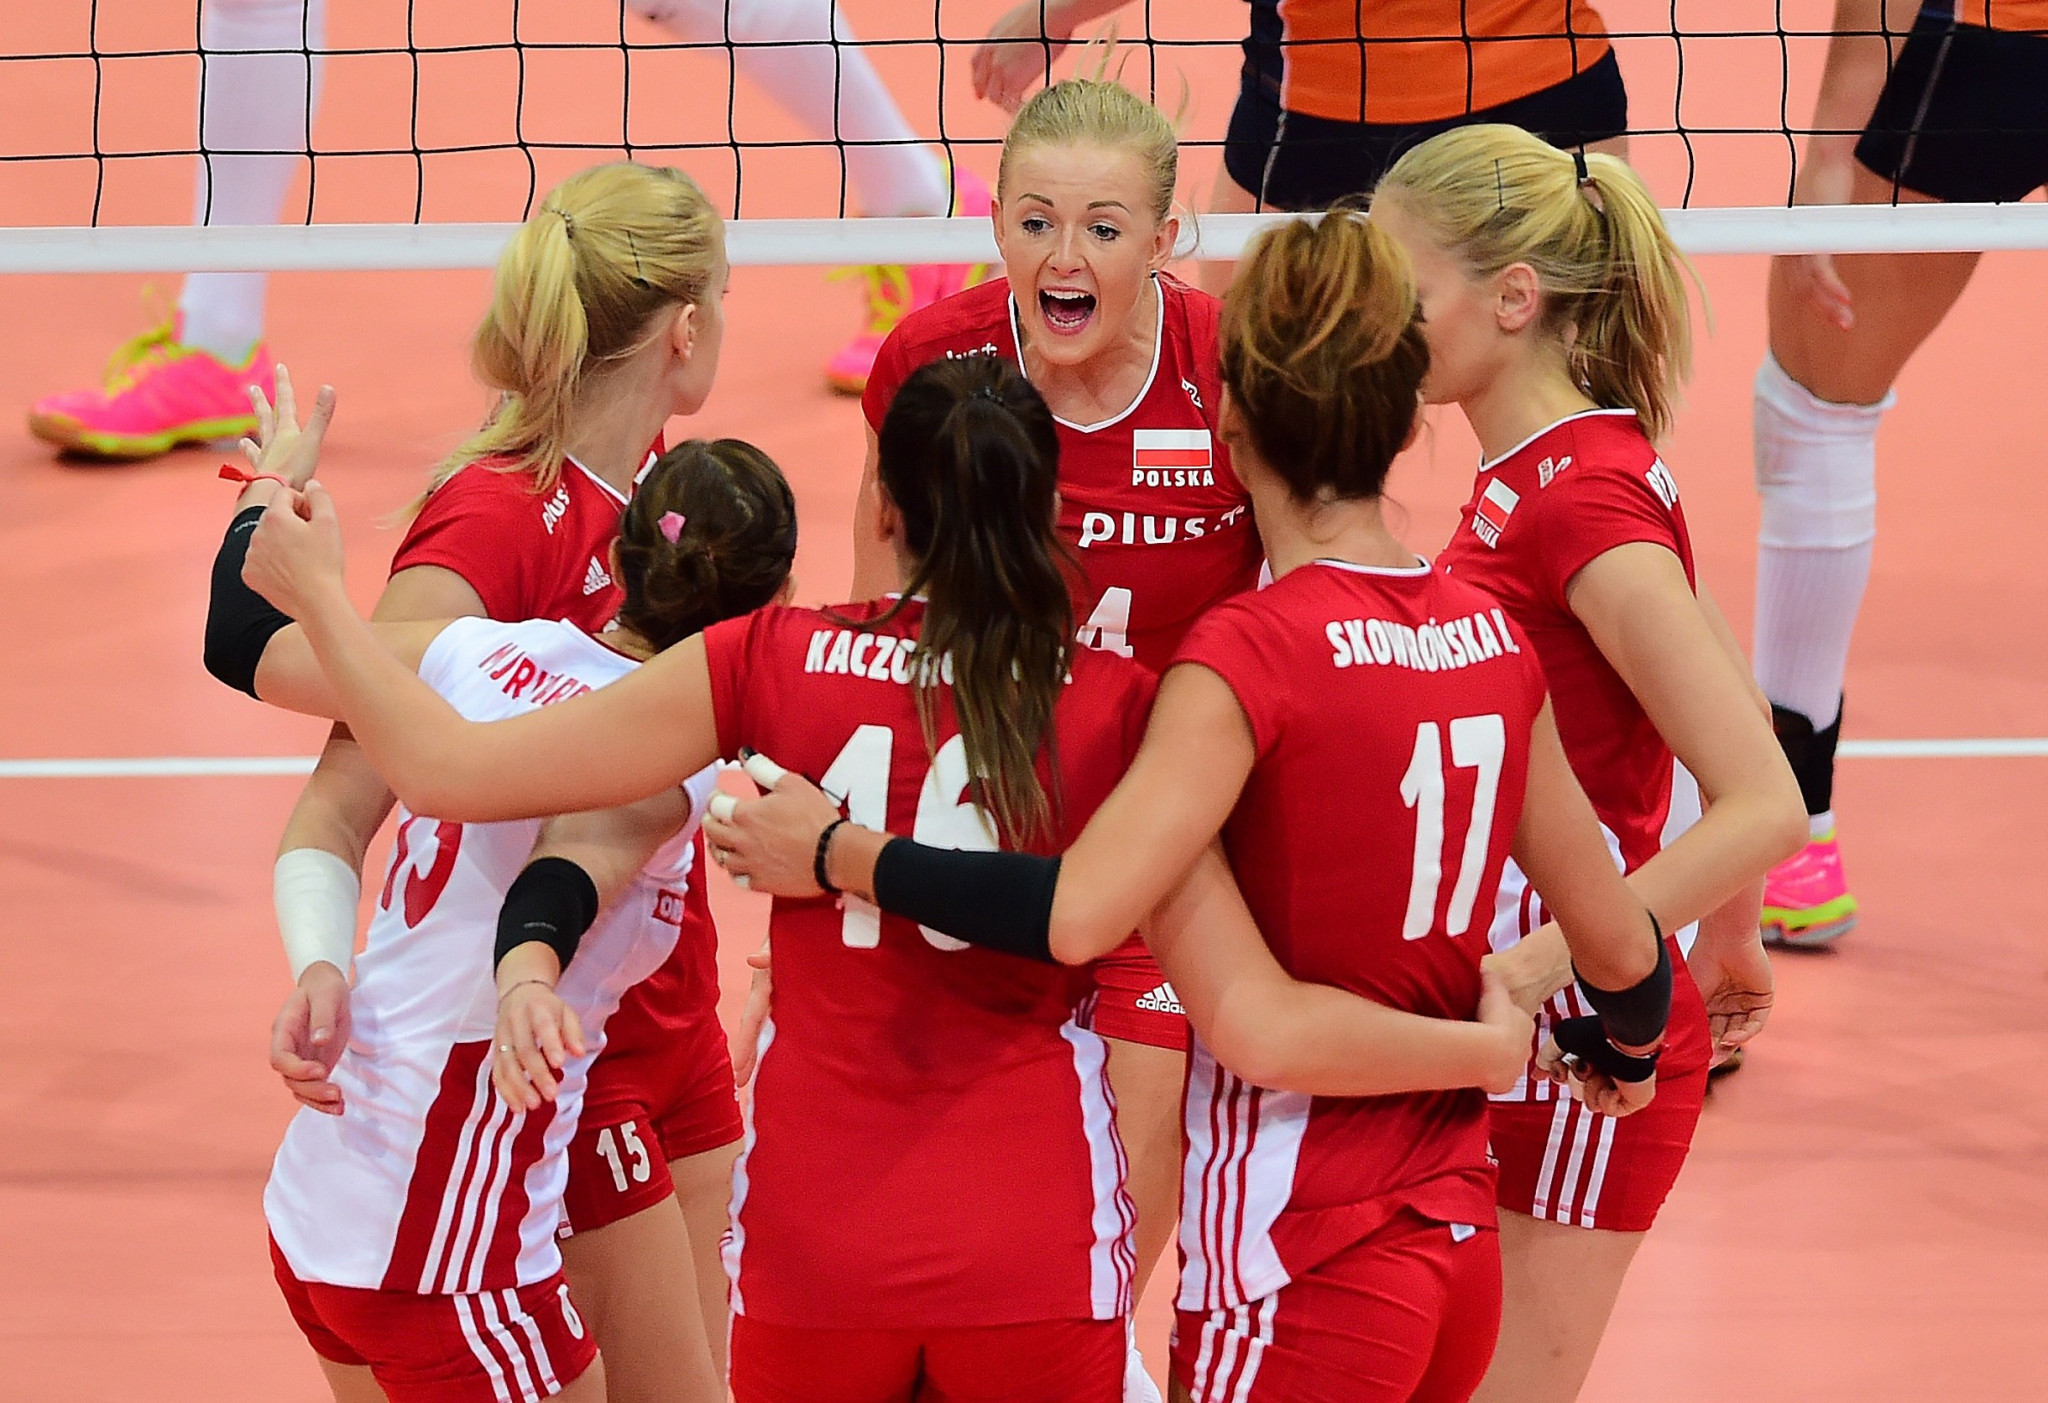 Six teams remain unbeaten after sixth day of Women's EuroVolley